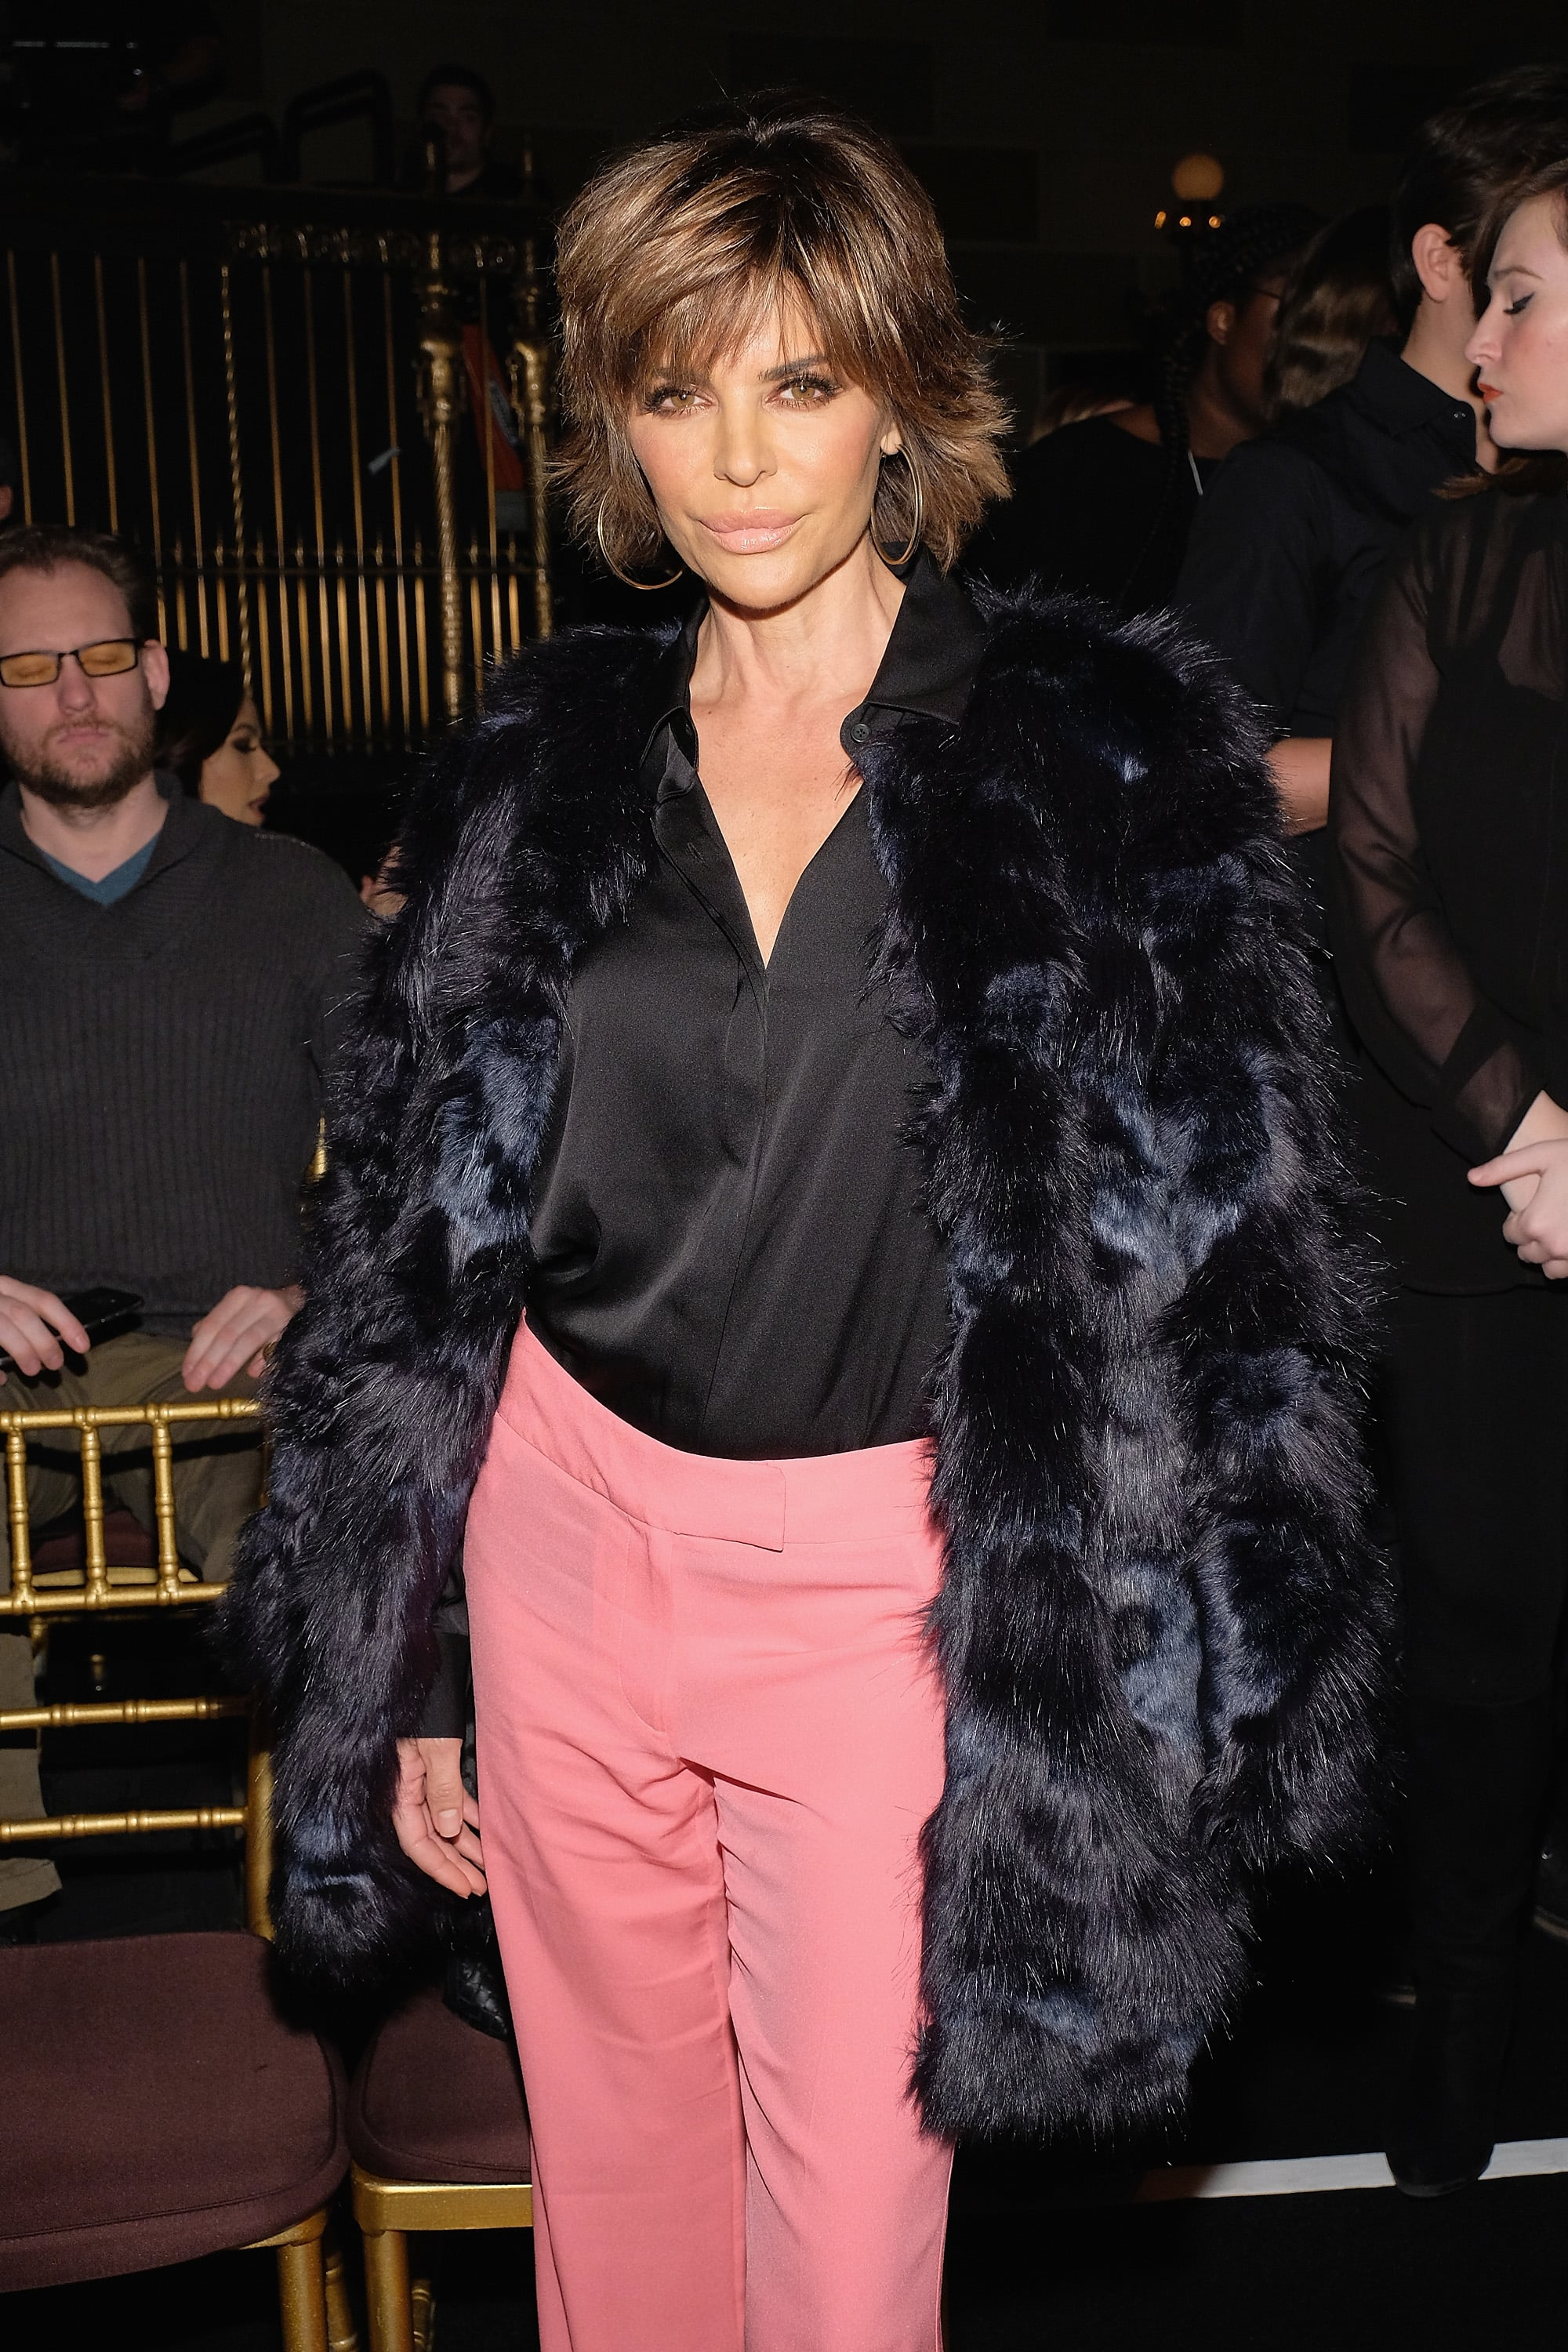 Instagram Lisa Rinna naked (97 photos), Topless, Bikini, Instagram, cleavage 2006